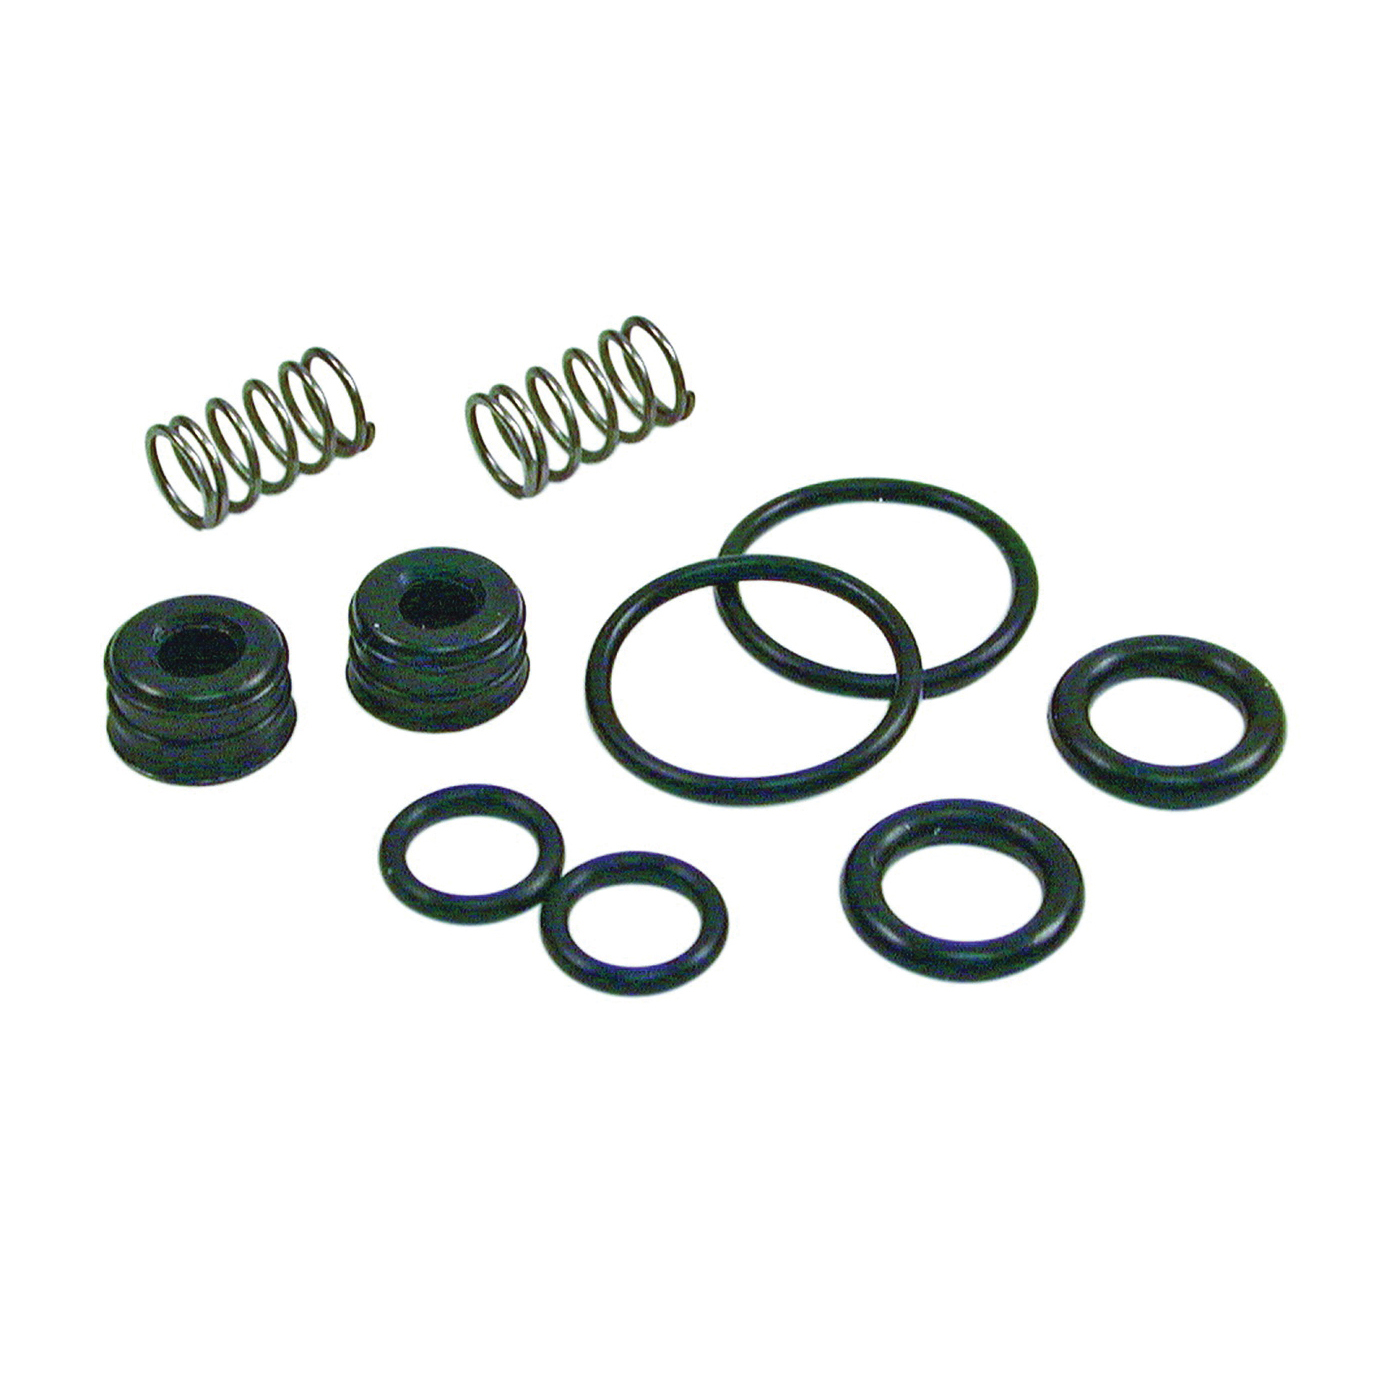 Picture of Danco 88100 Stem Repair Kit, Stainless Steel, For: Sterling Both Sides Two-Handle Washerless Faucets